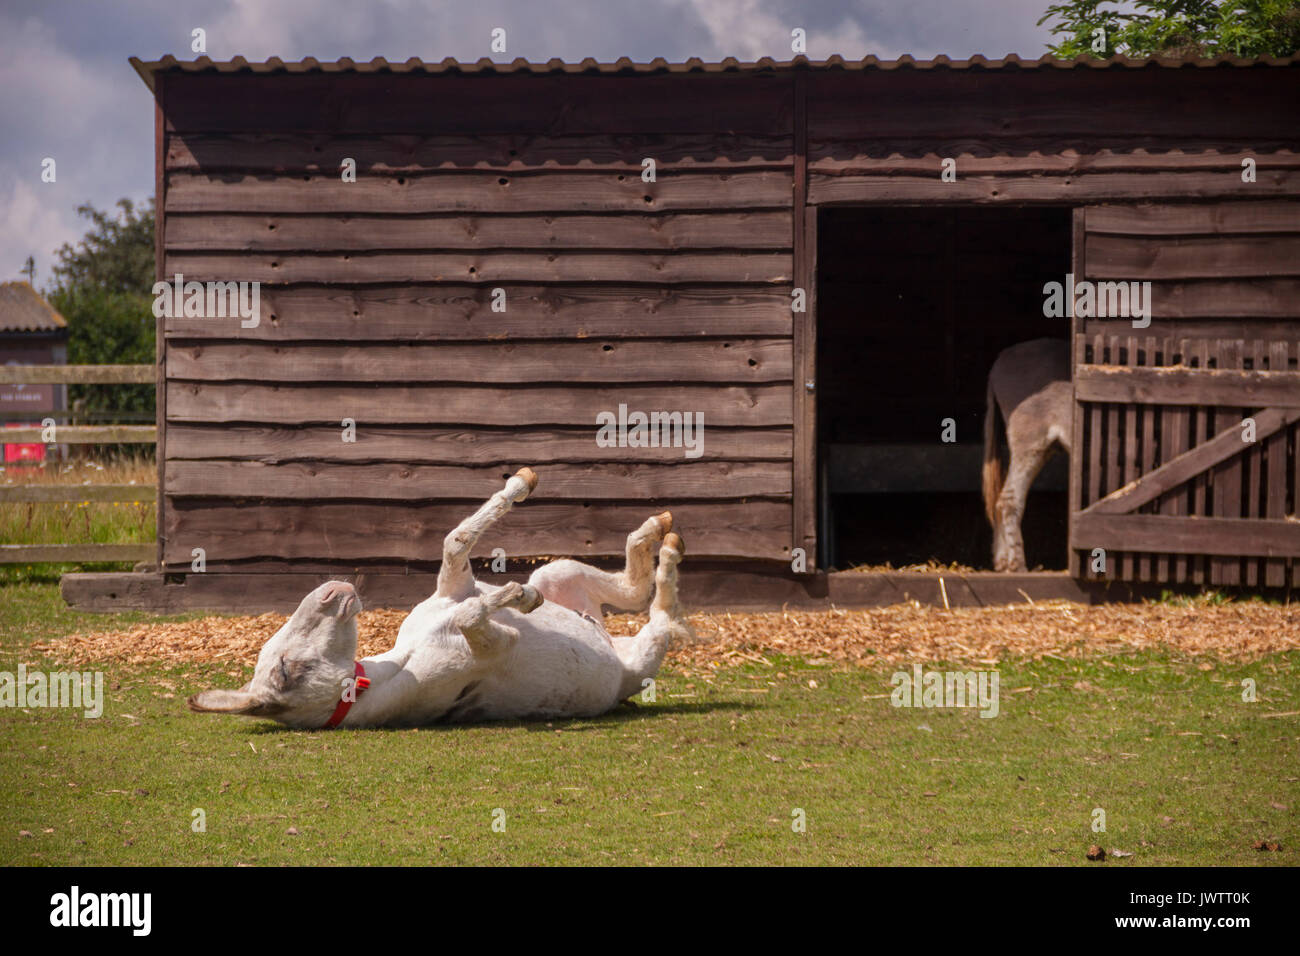 Donkey rolling in the grass at Sidmouth donkey sanctuary - Stock Image